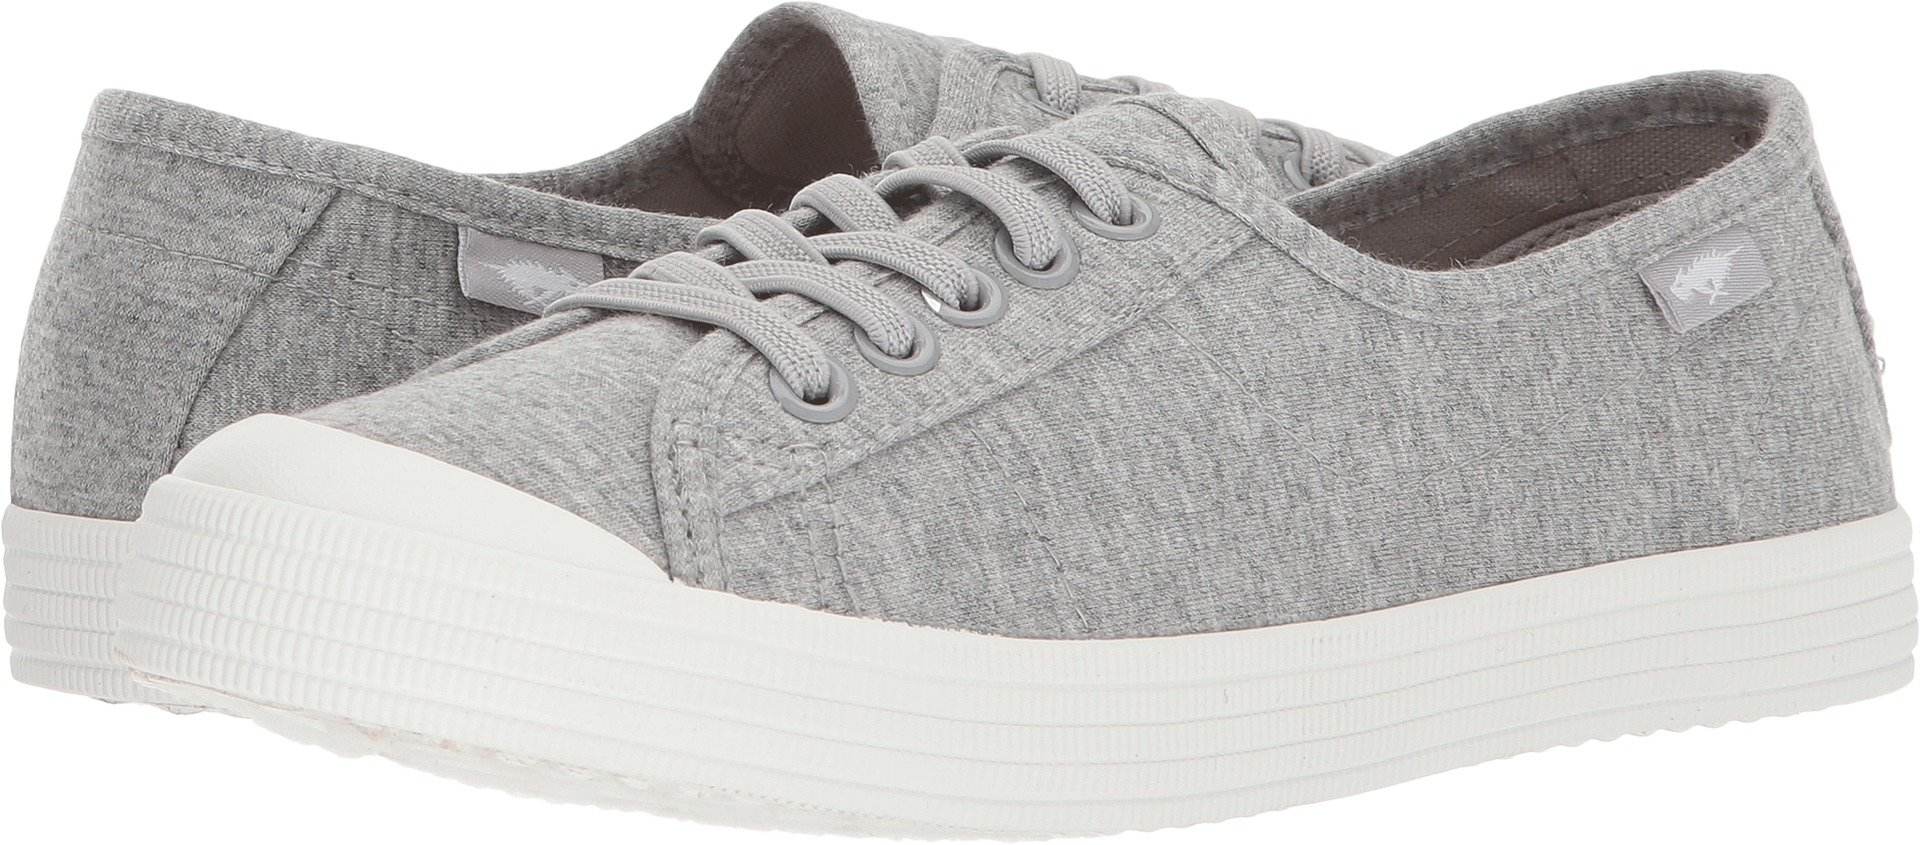 Rocket Dog Women's Chowchow Summer Jersey Cotton Sneaker, Light Grey, 9.5 Medium US